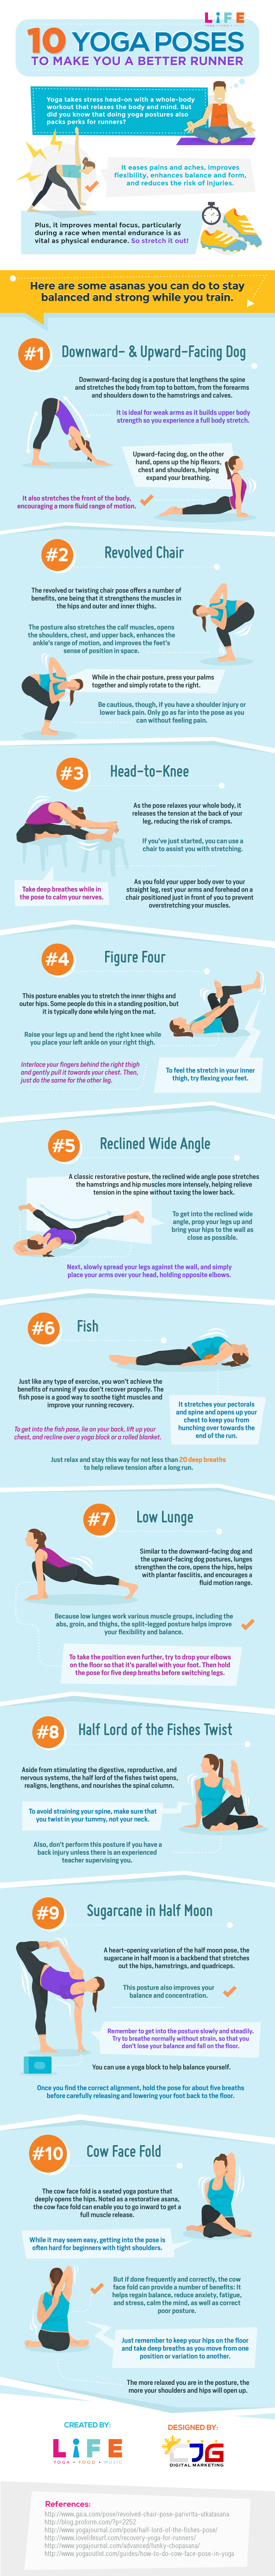 10-Yoga-Poses-to-Make-You-a-Better-Runner